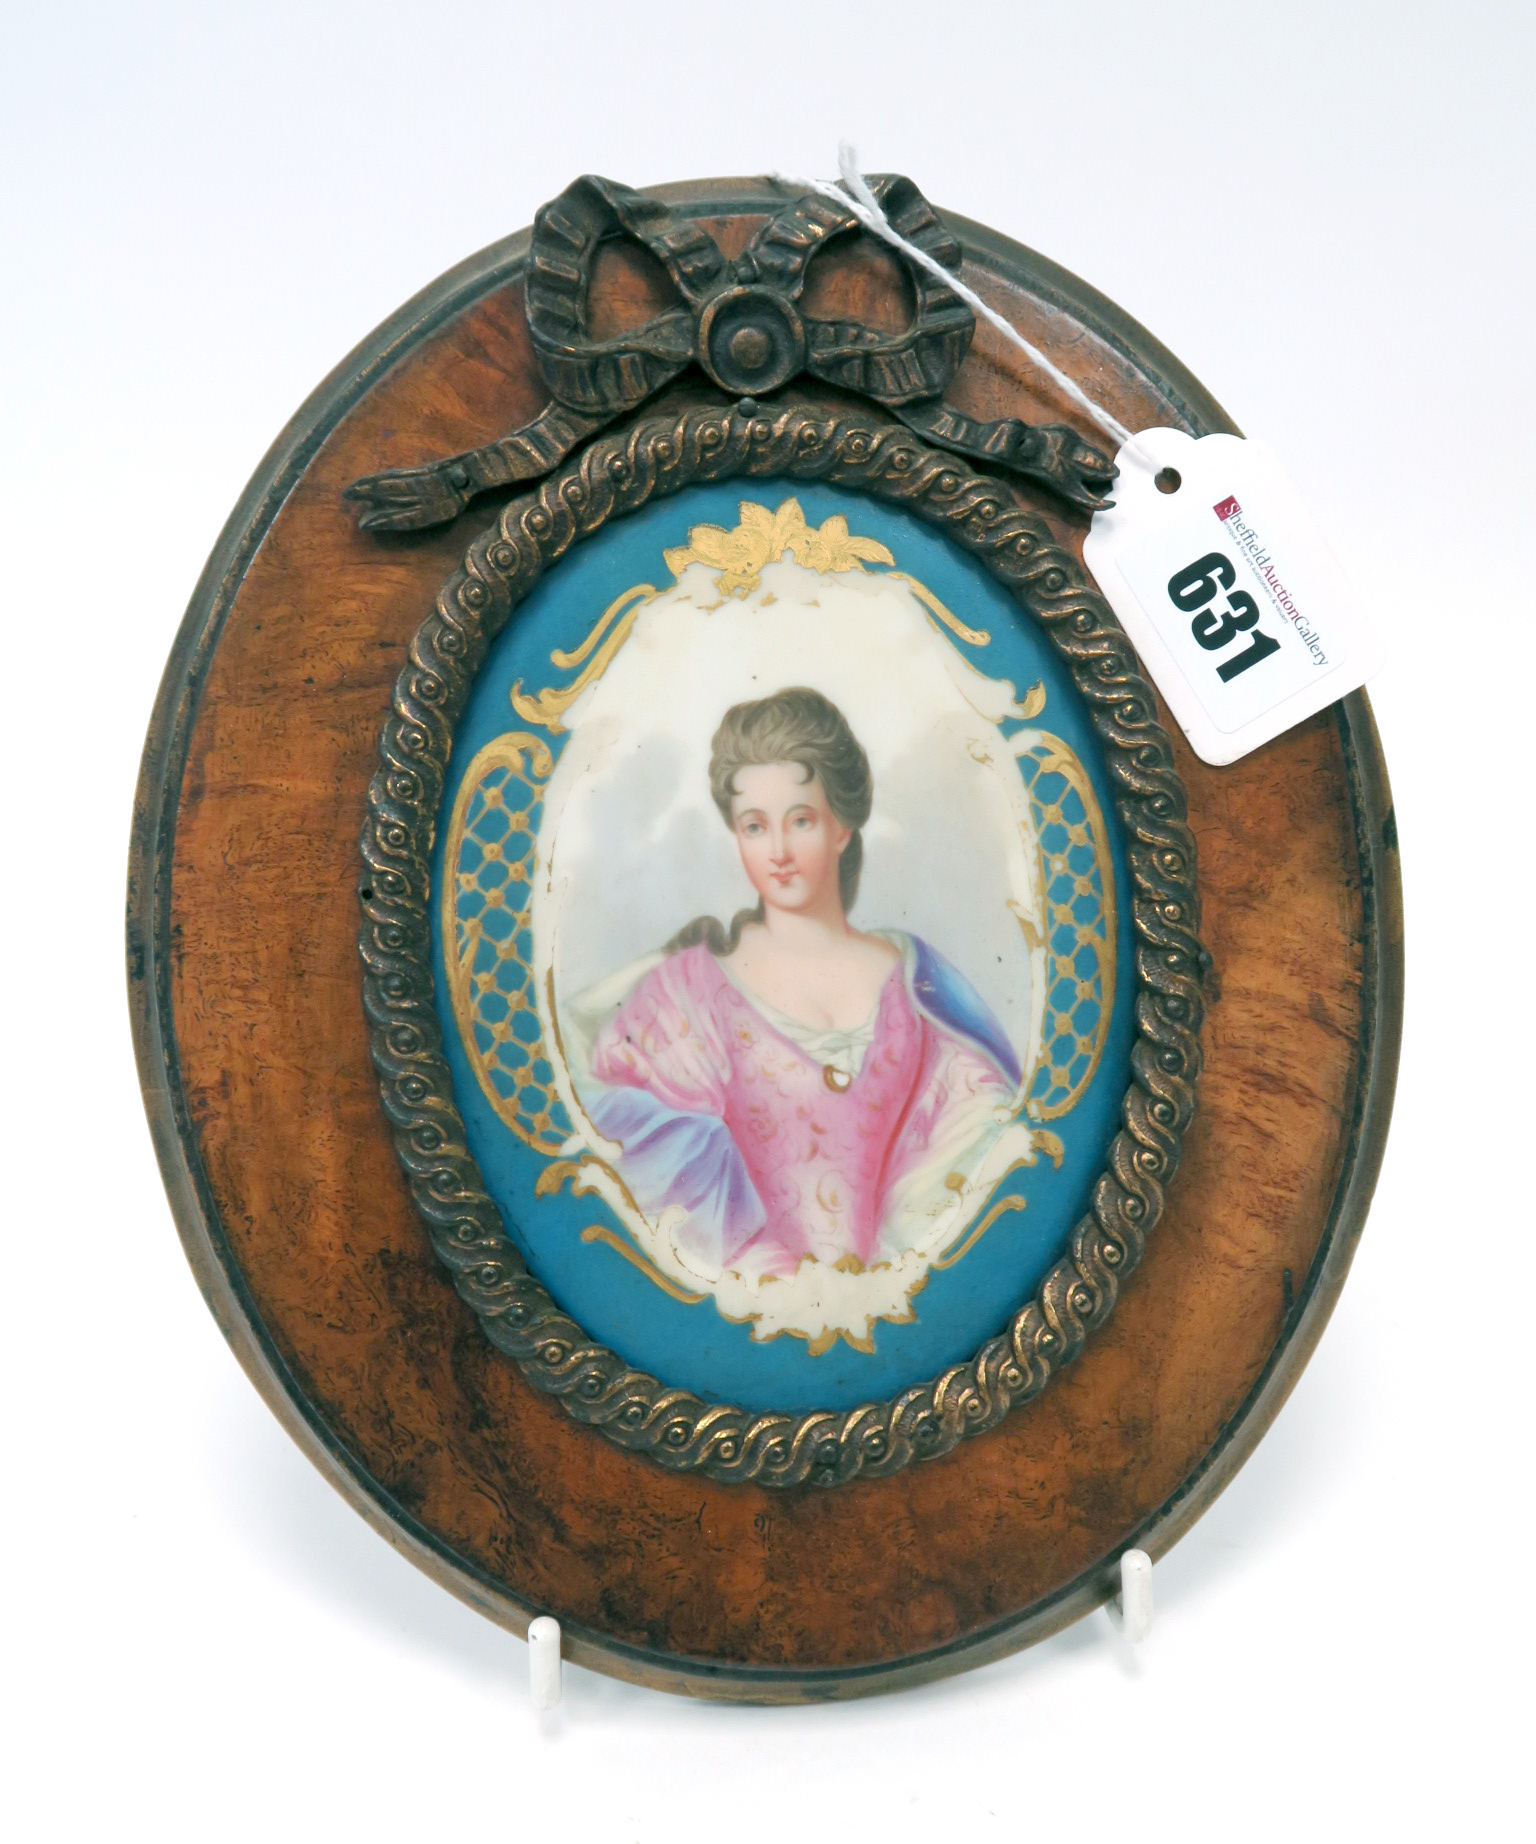 Lot 631 - A Late XIX Century French Sévres Style Porcelain Plaque, of oval form, painted with a portrait of